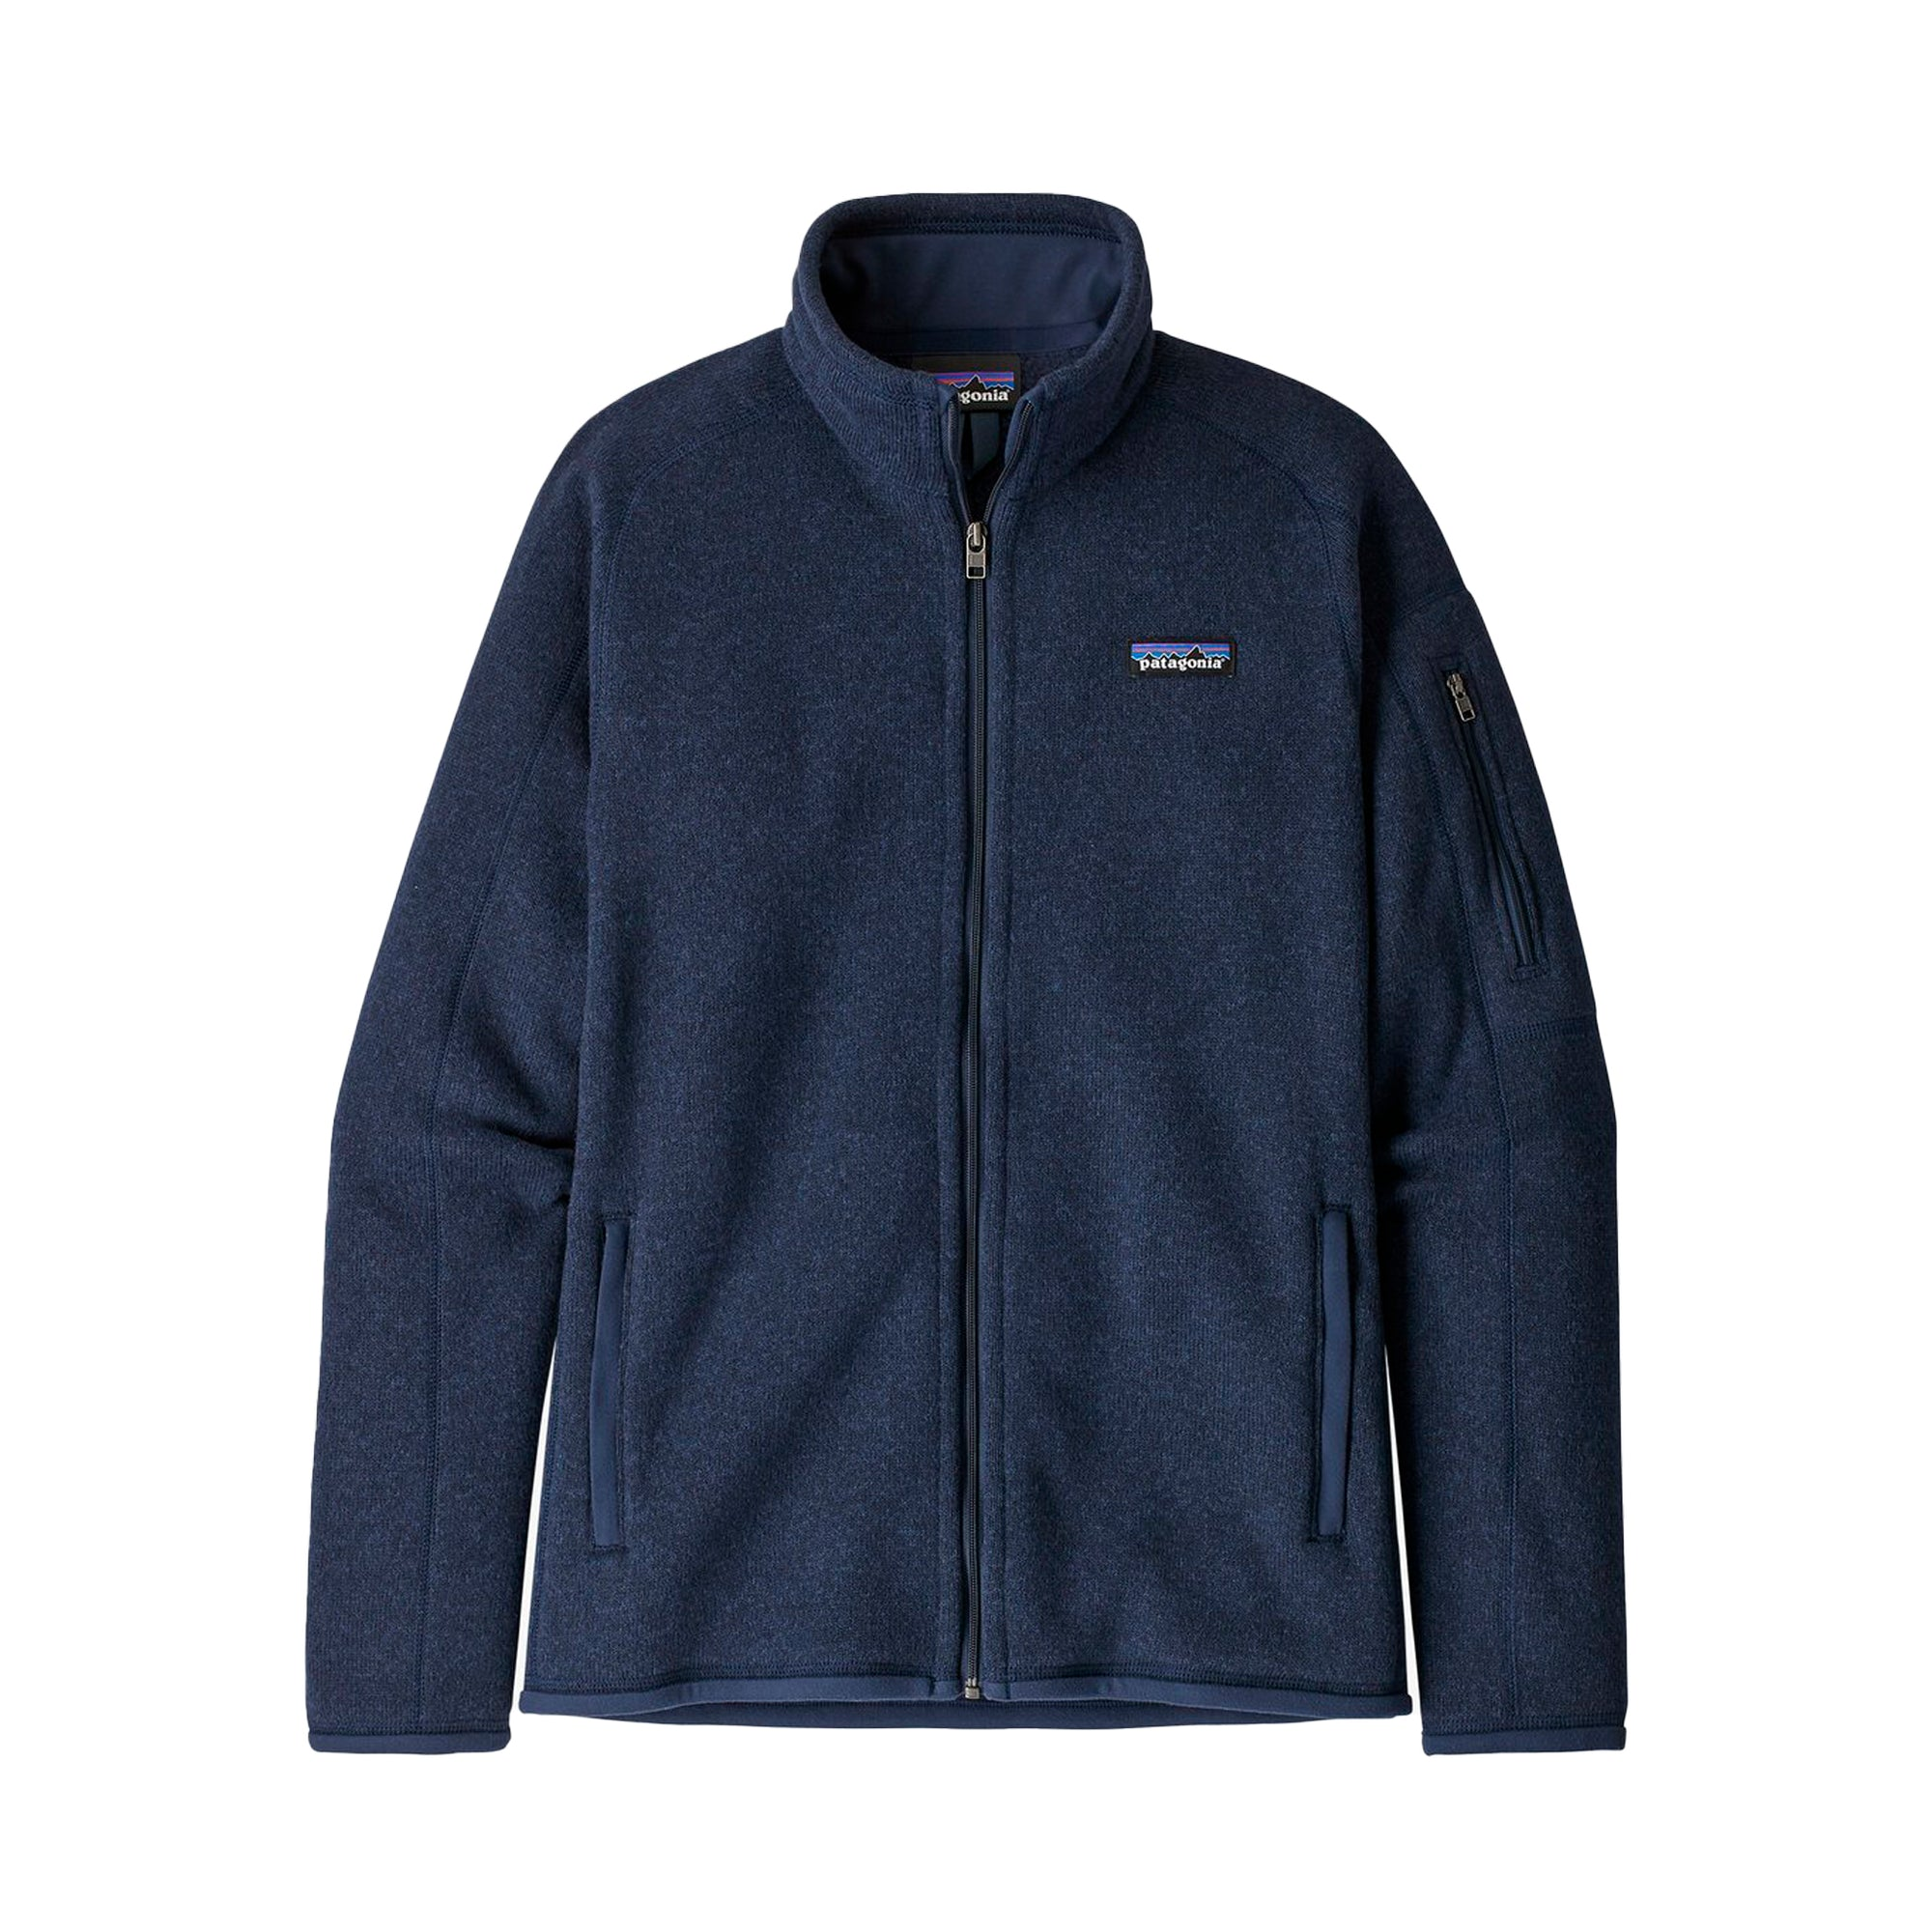 Patagonia Womens Better Sweater Jacket: New Navy - The Union Project